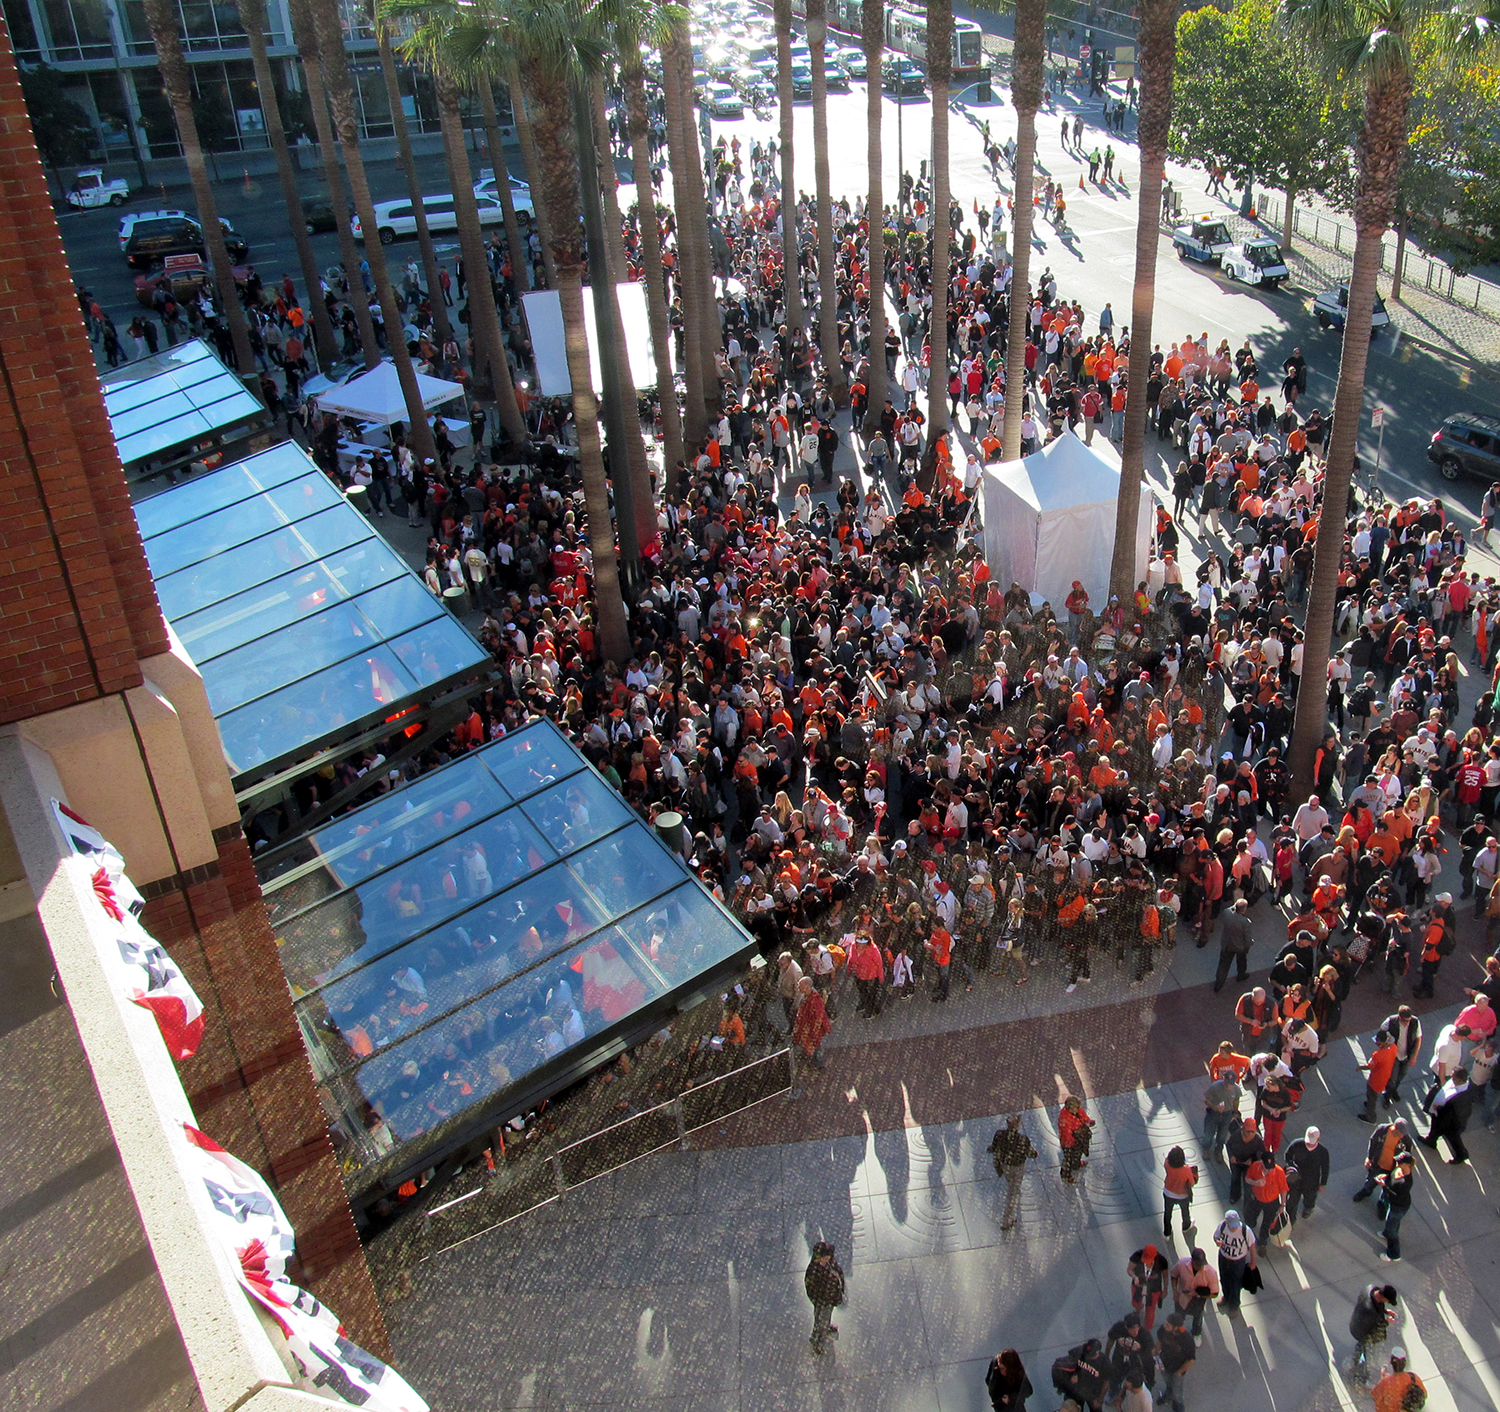 AT&T Park - Willie Mays Plaza